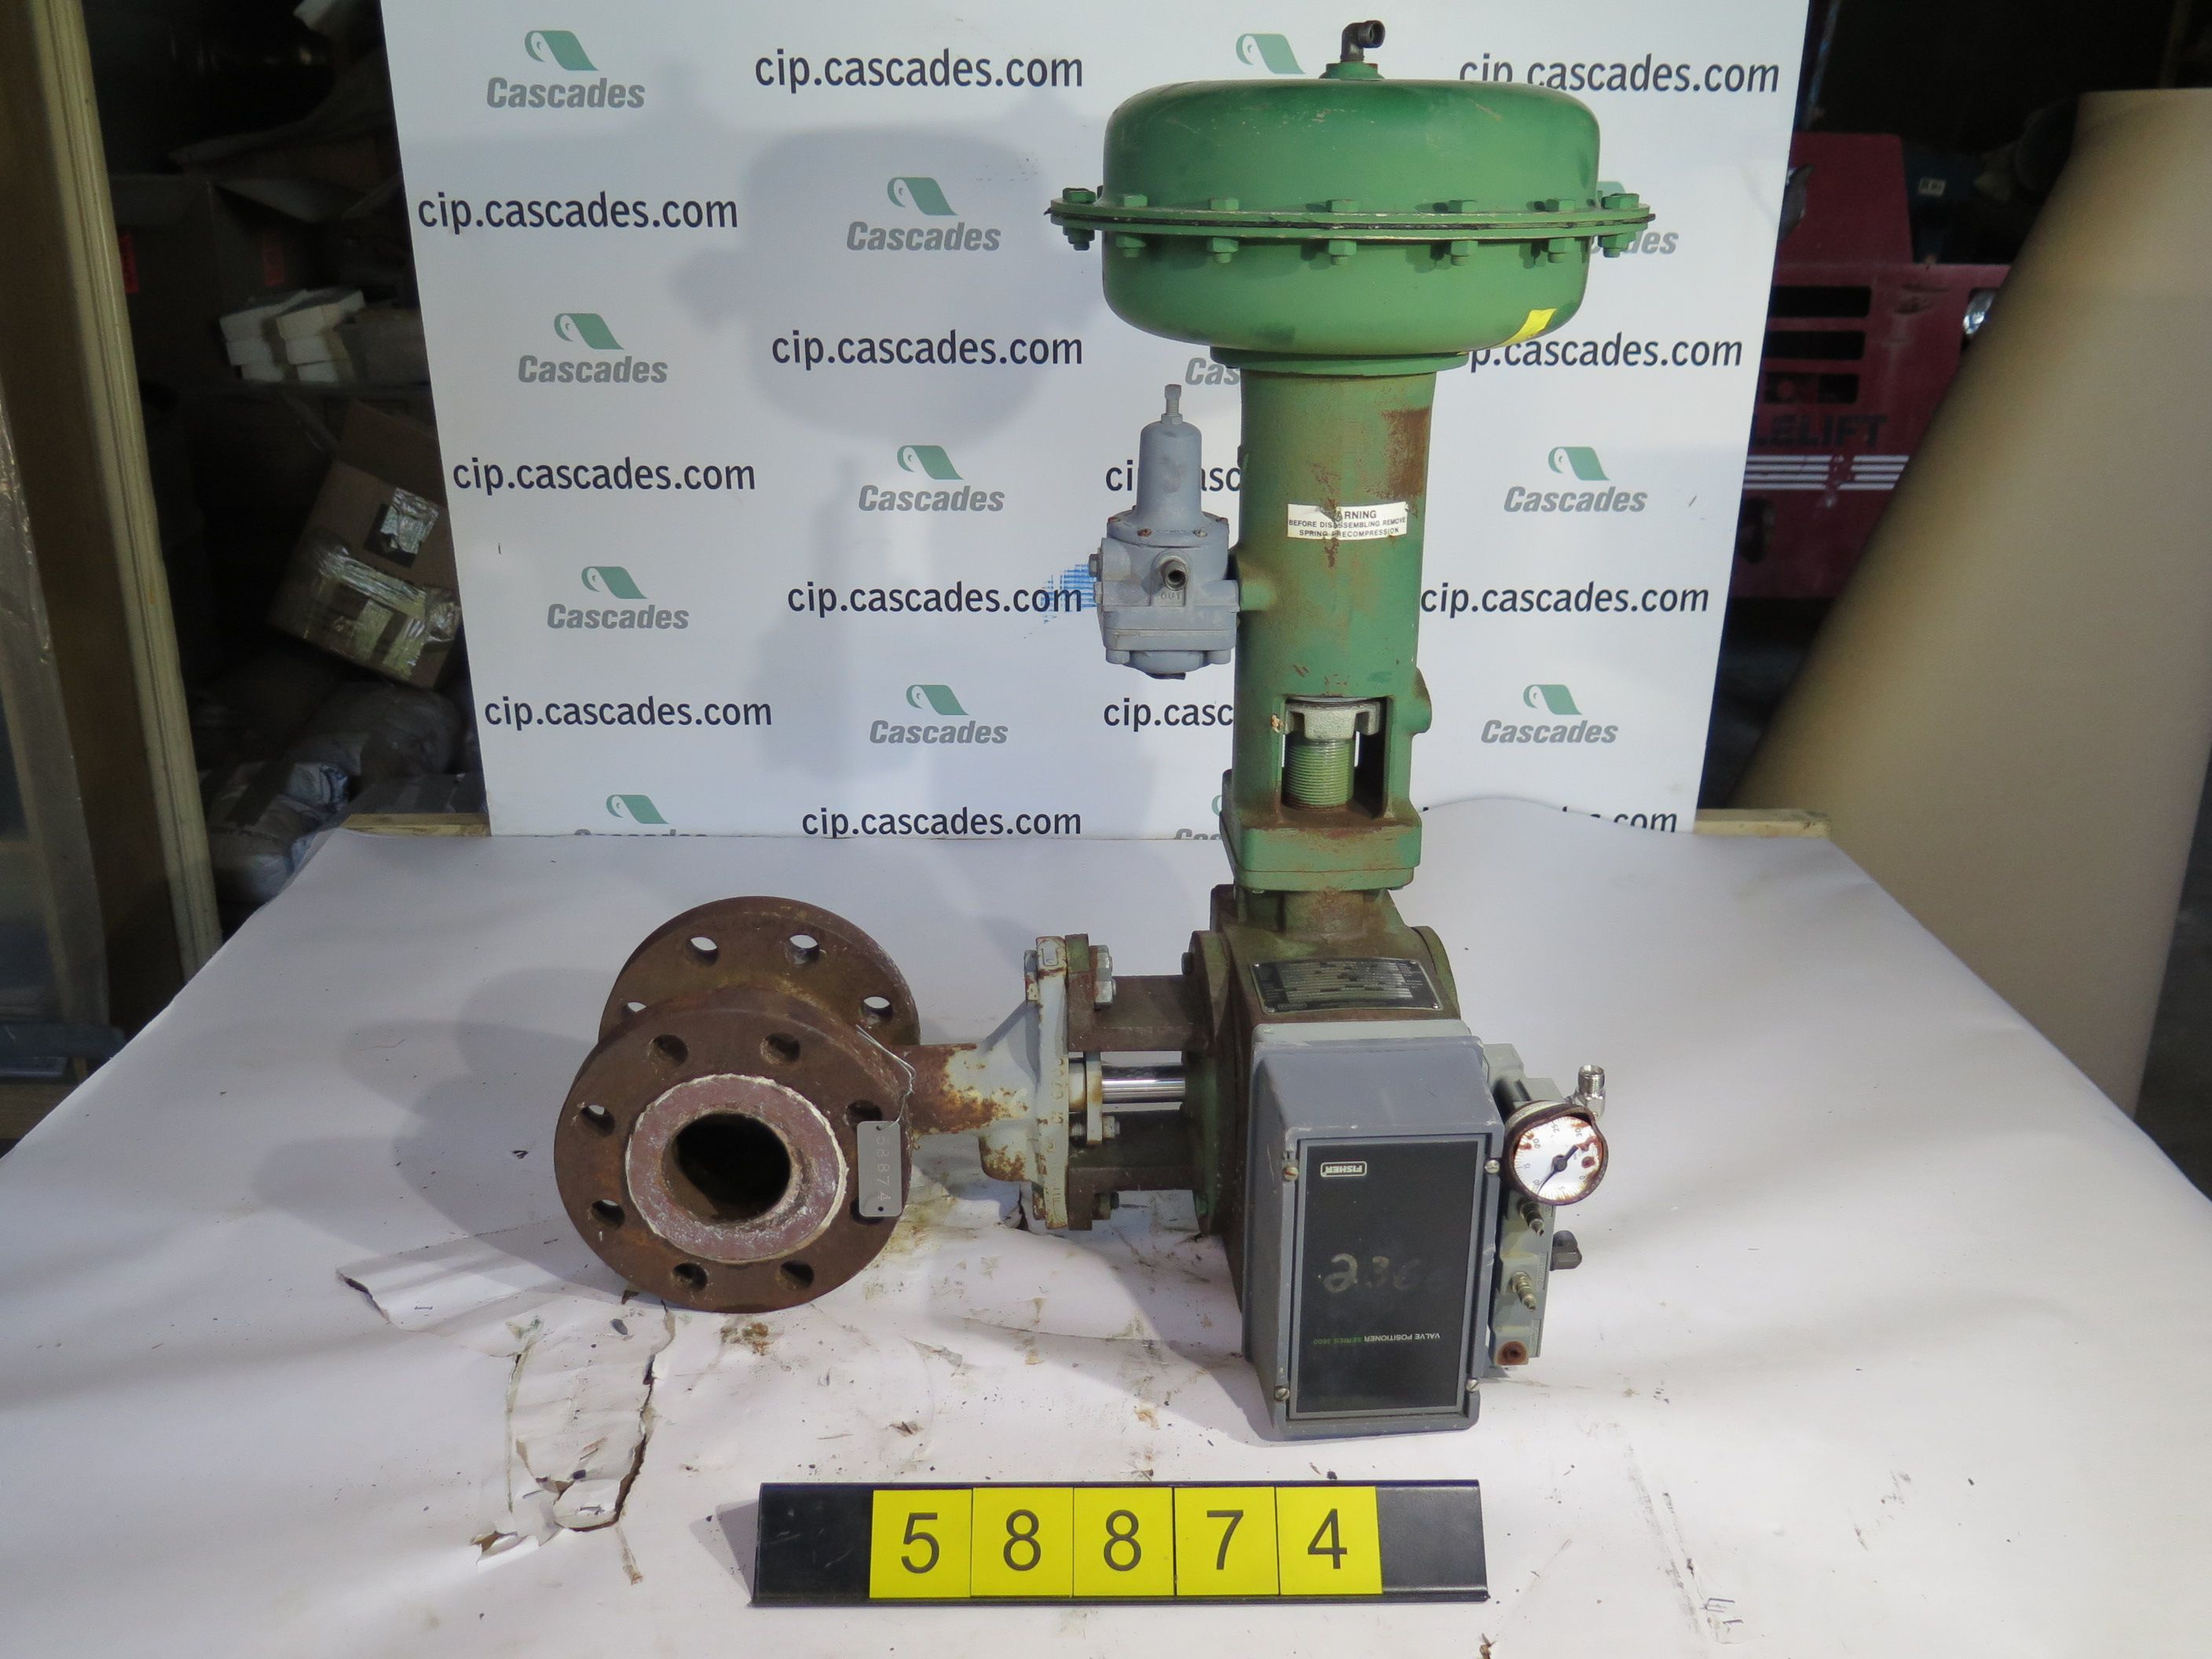 Used globe valve rotary controls valve fisher 1052 v500 3 used globe valve rotary controls valve fisher 1052 v500 3 for sale publicscrutiny Gallery